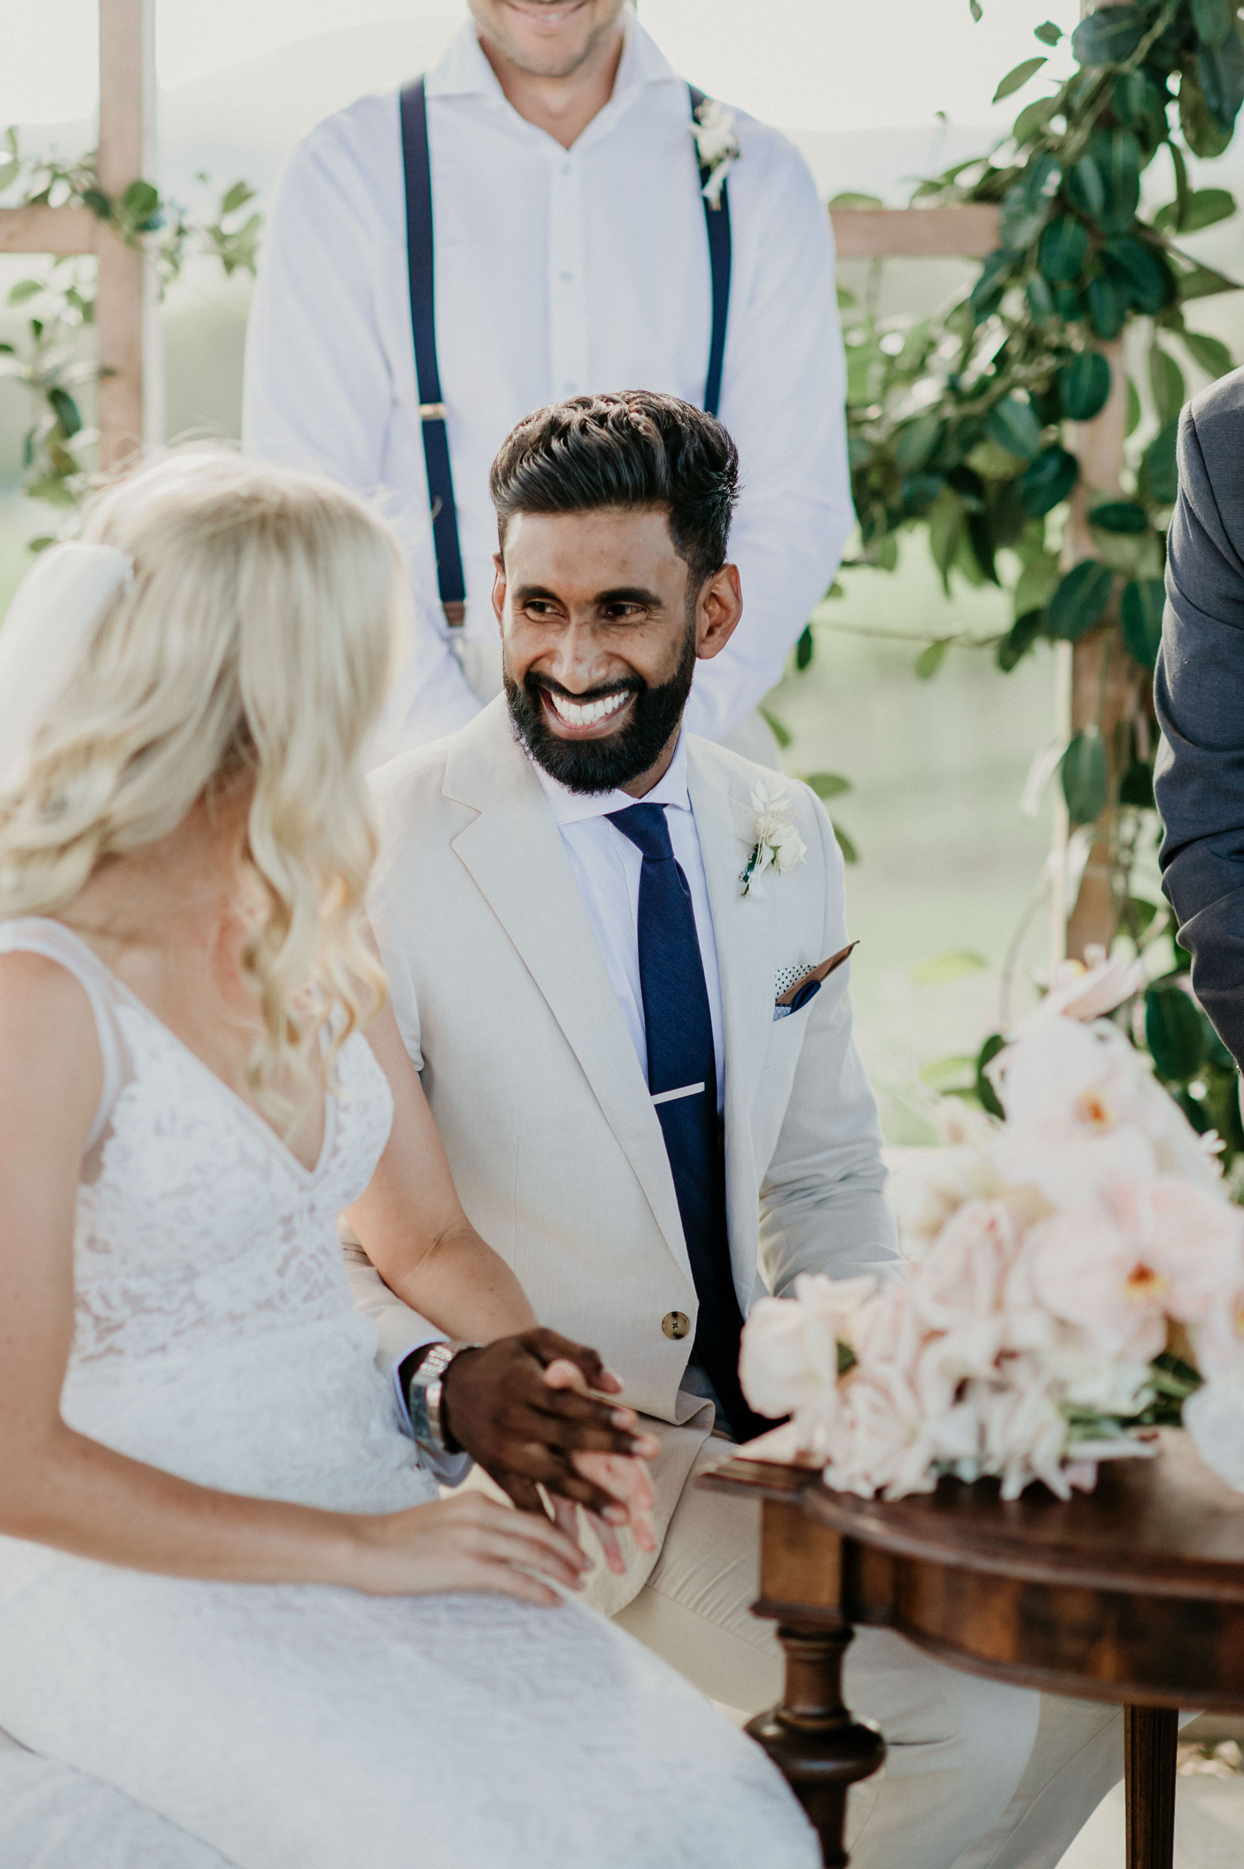 groom smiles at bride sitting at table